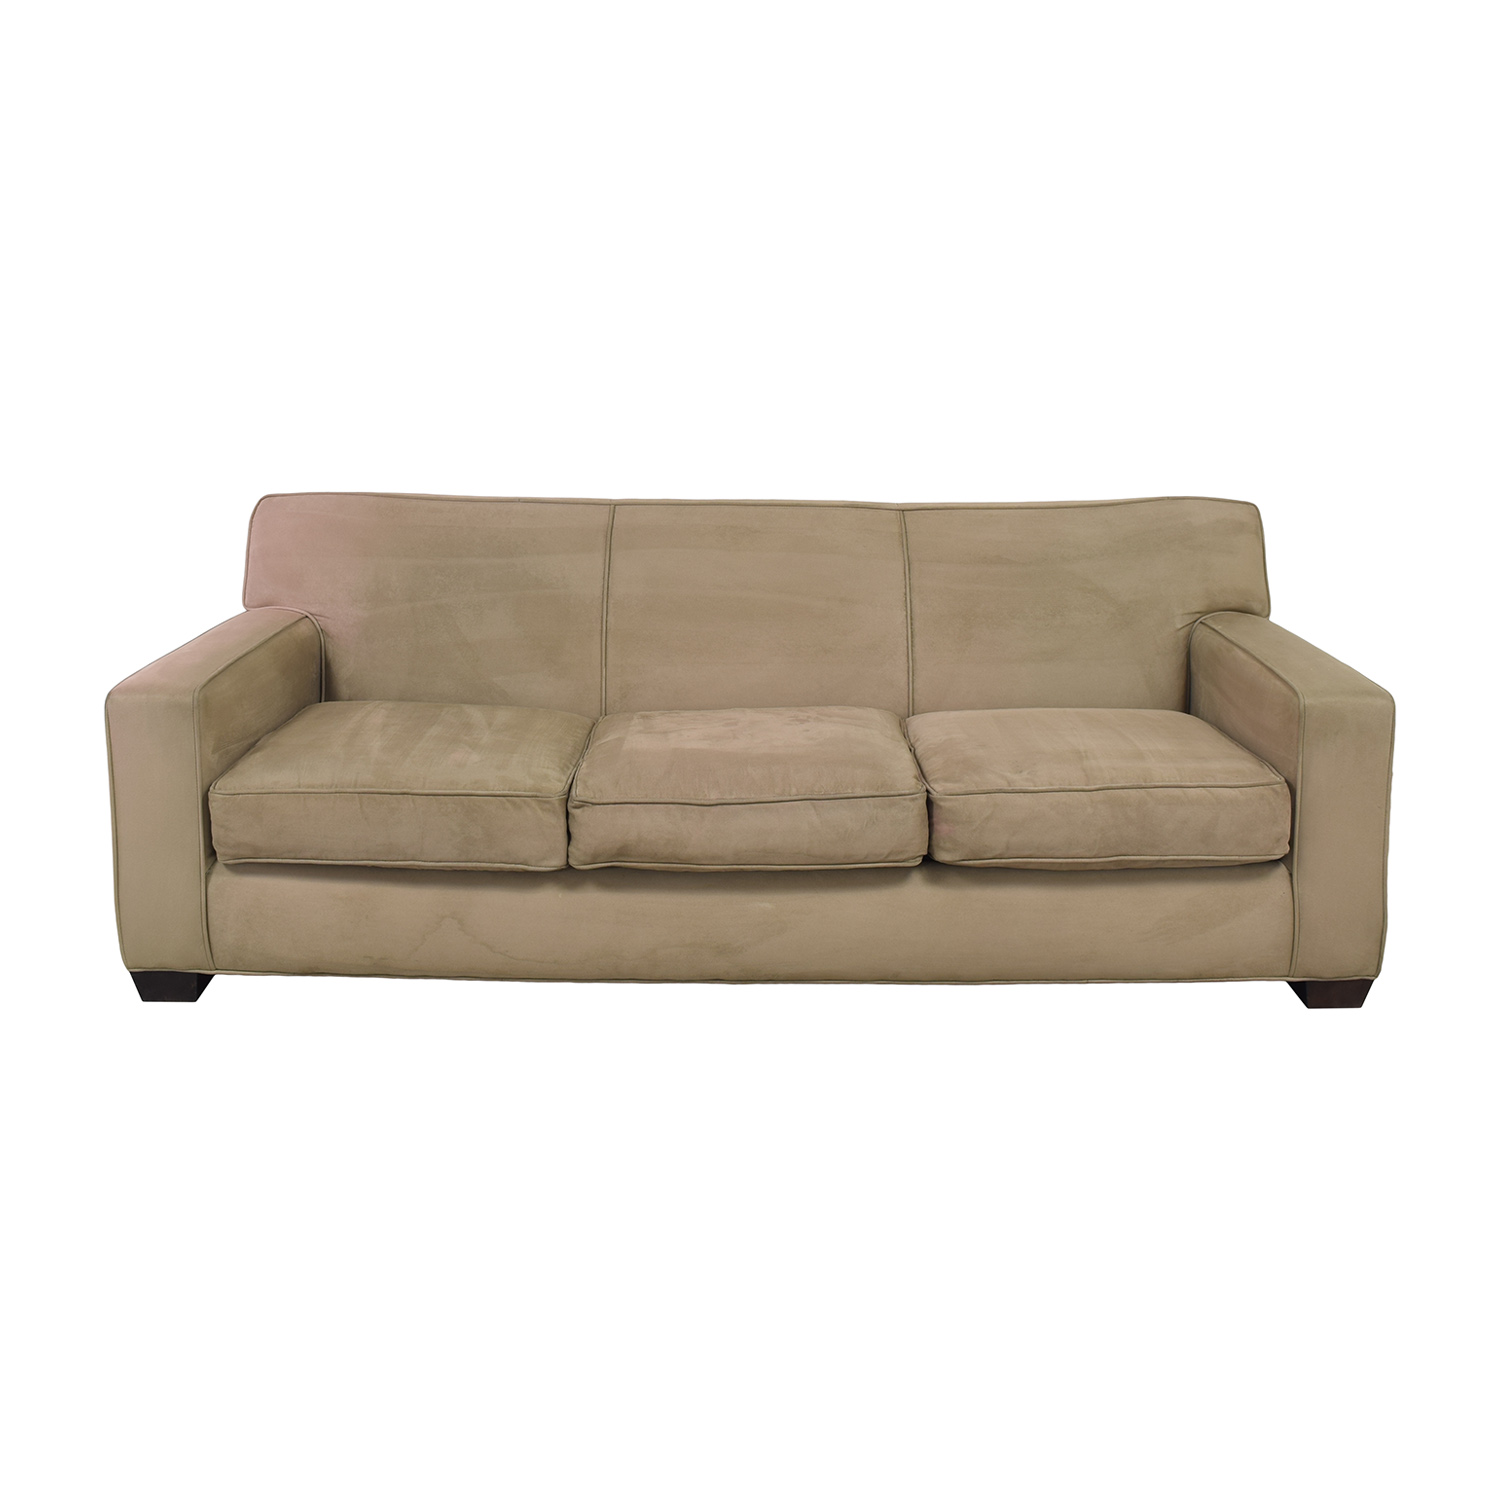 Crate & Barrel Crate & Barrel Three Cushion Sofa